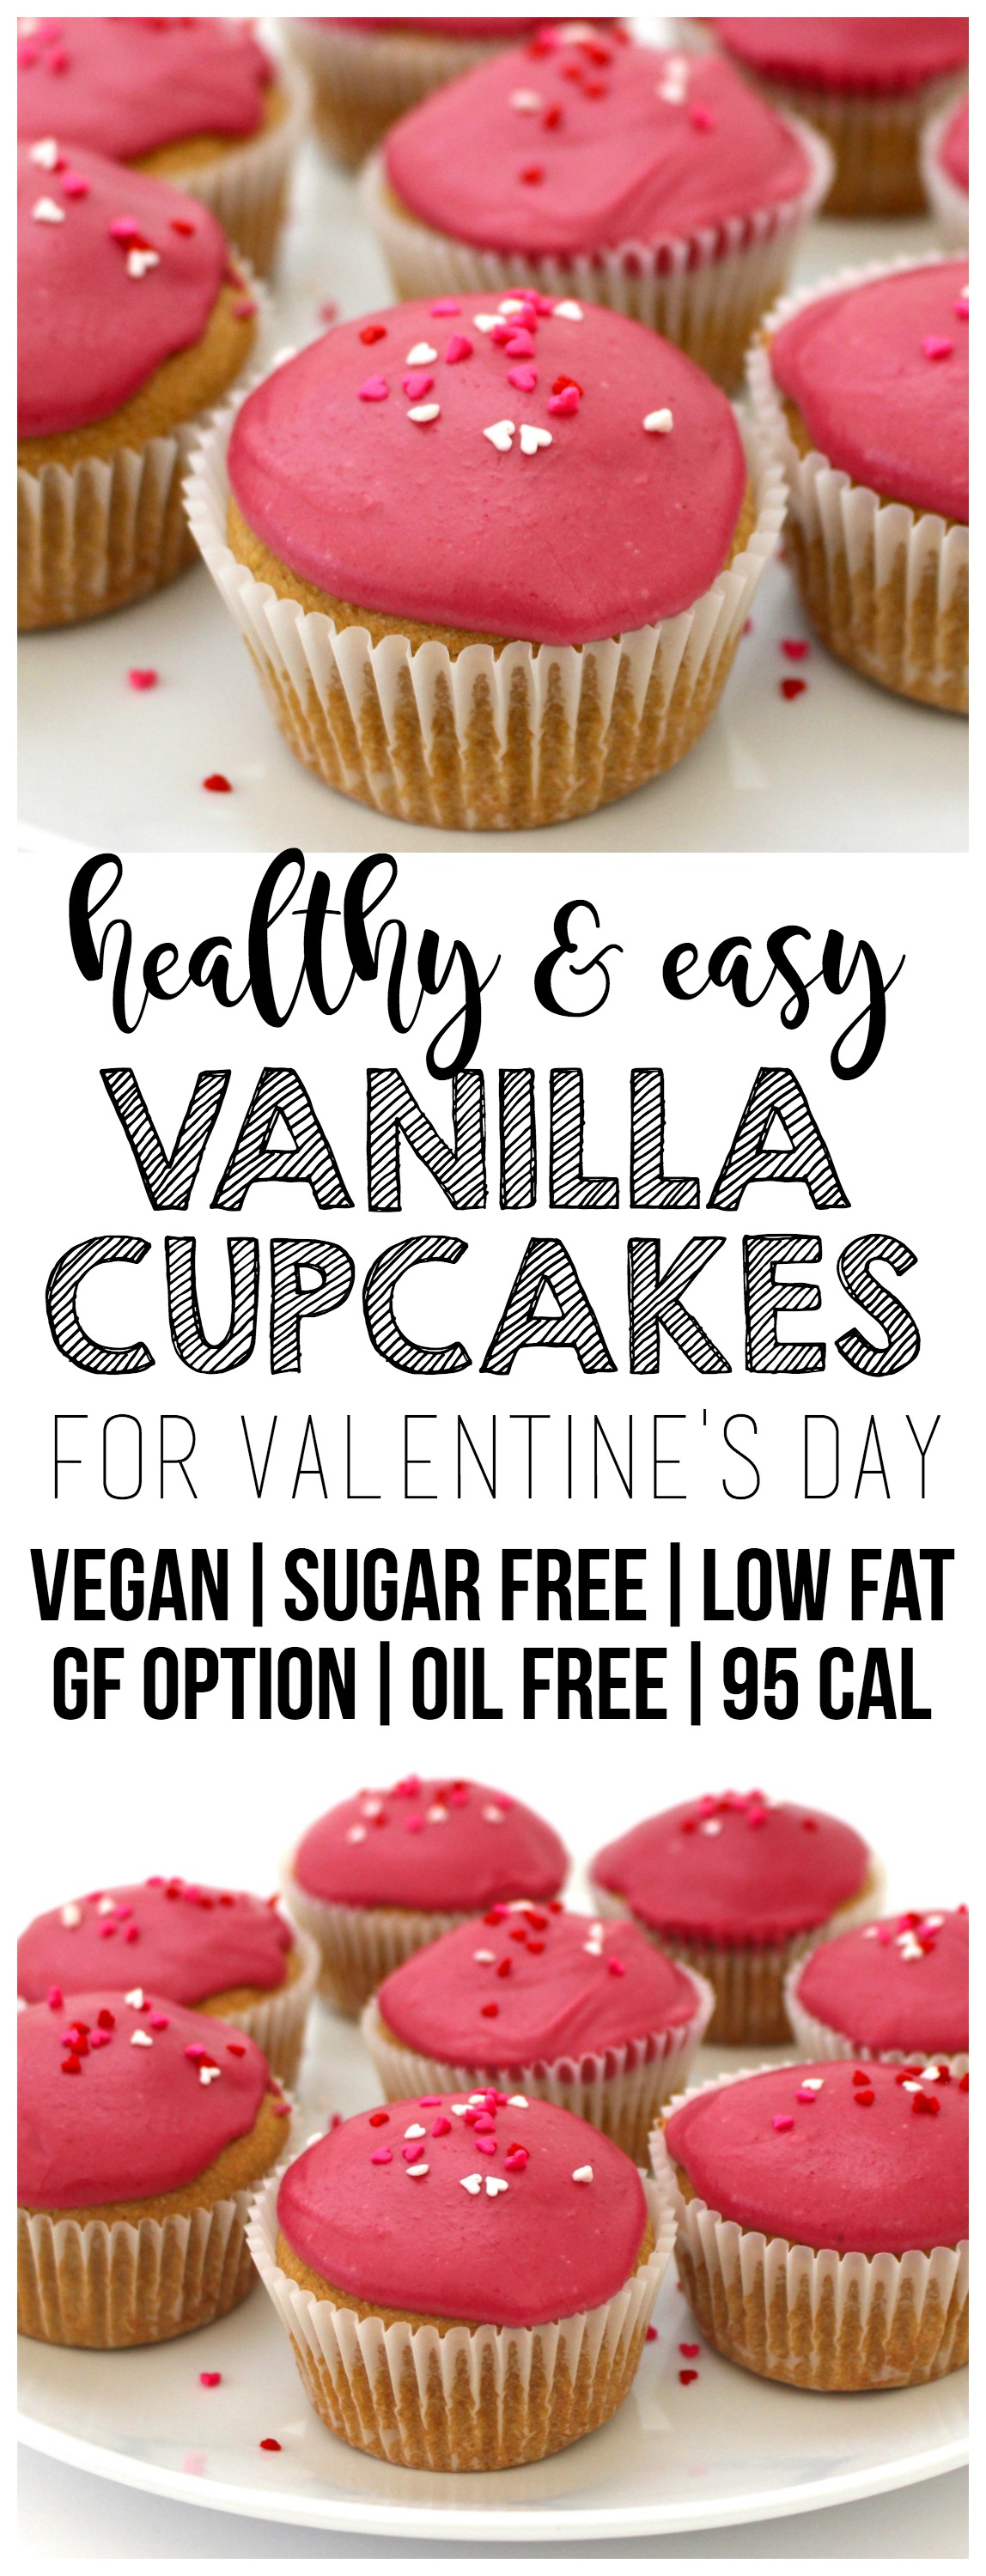 These super simple and festive Vegan Vanilla Cupcakes are perfect for Valentine's day! They are sugar-free, fat-free, oil-free with a gluten-free option. Also super low-calorie - only 95 calories each!